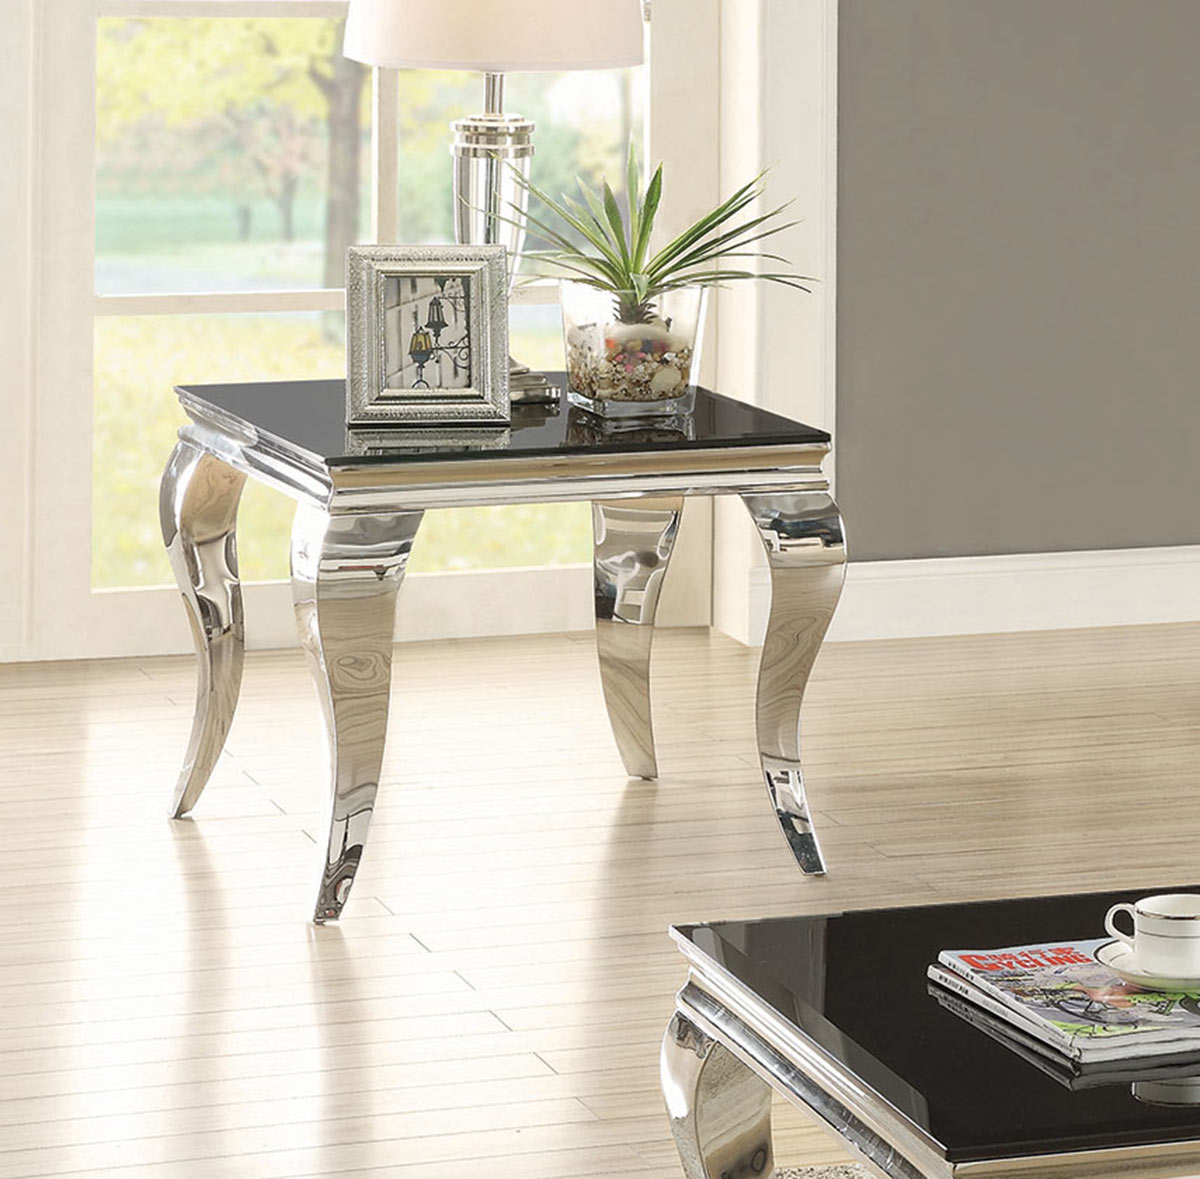 Coaster 705017 End Table - Chrome